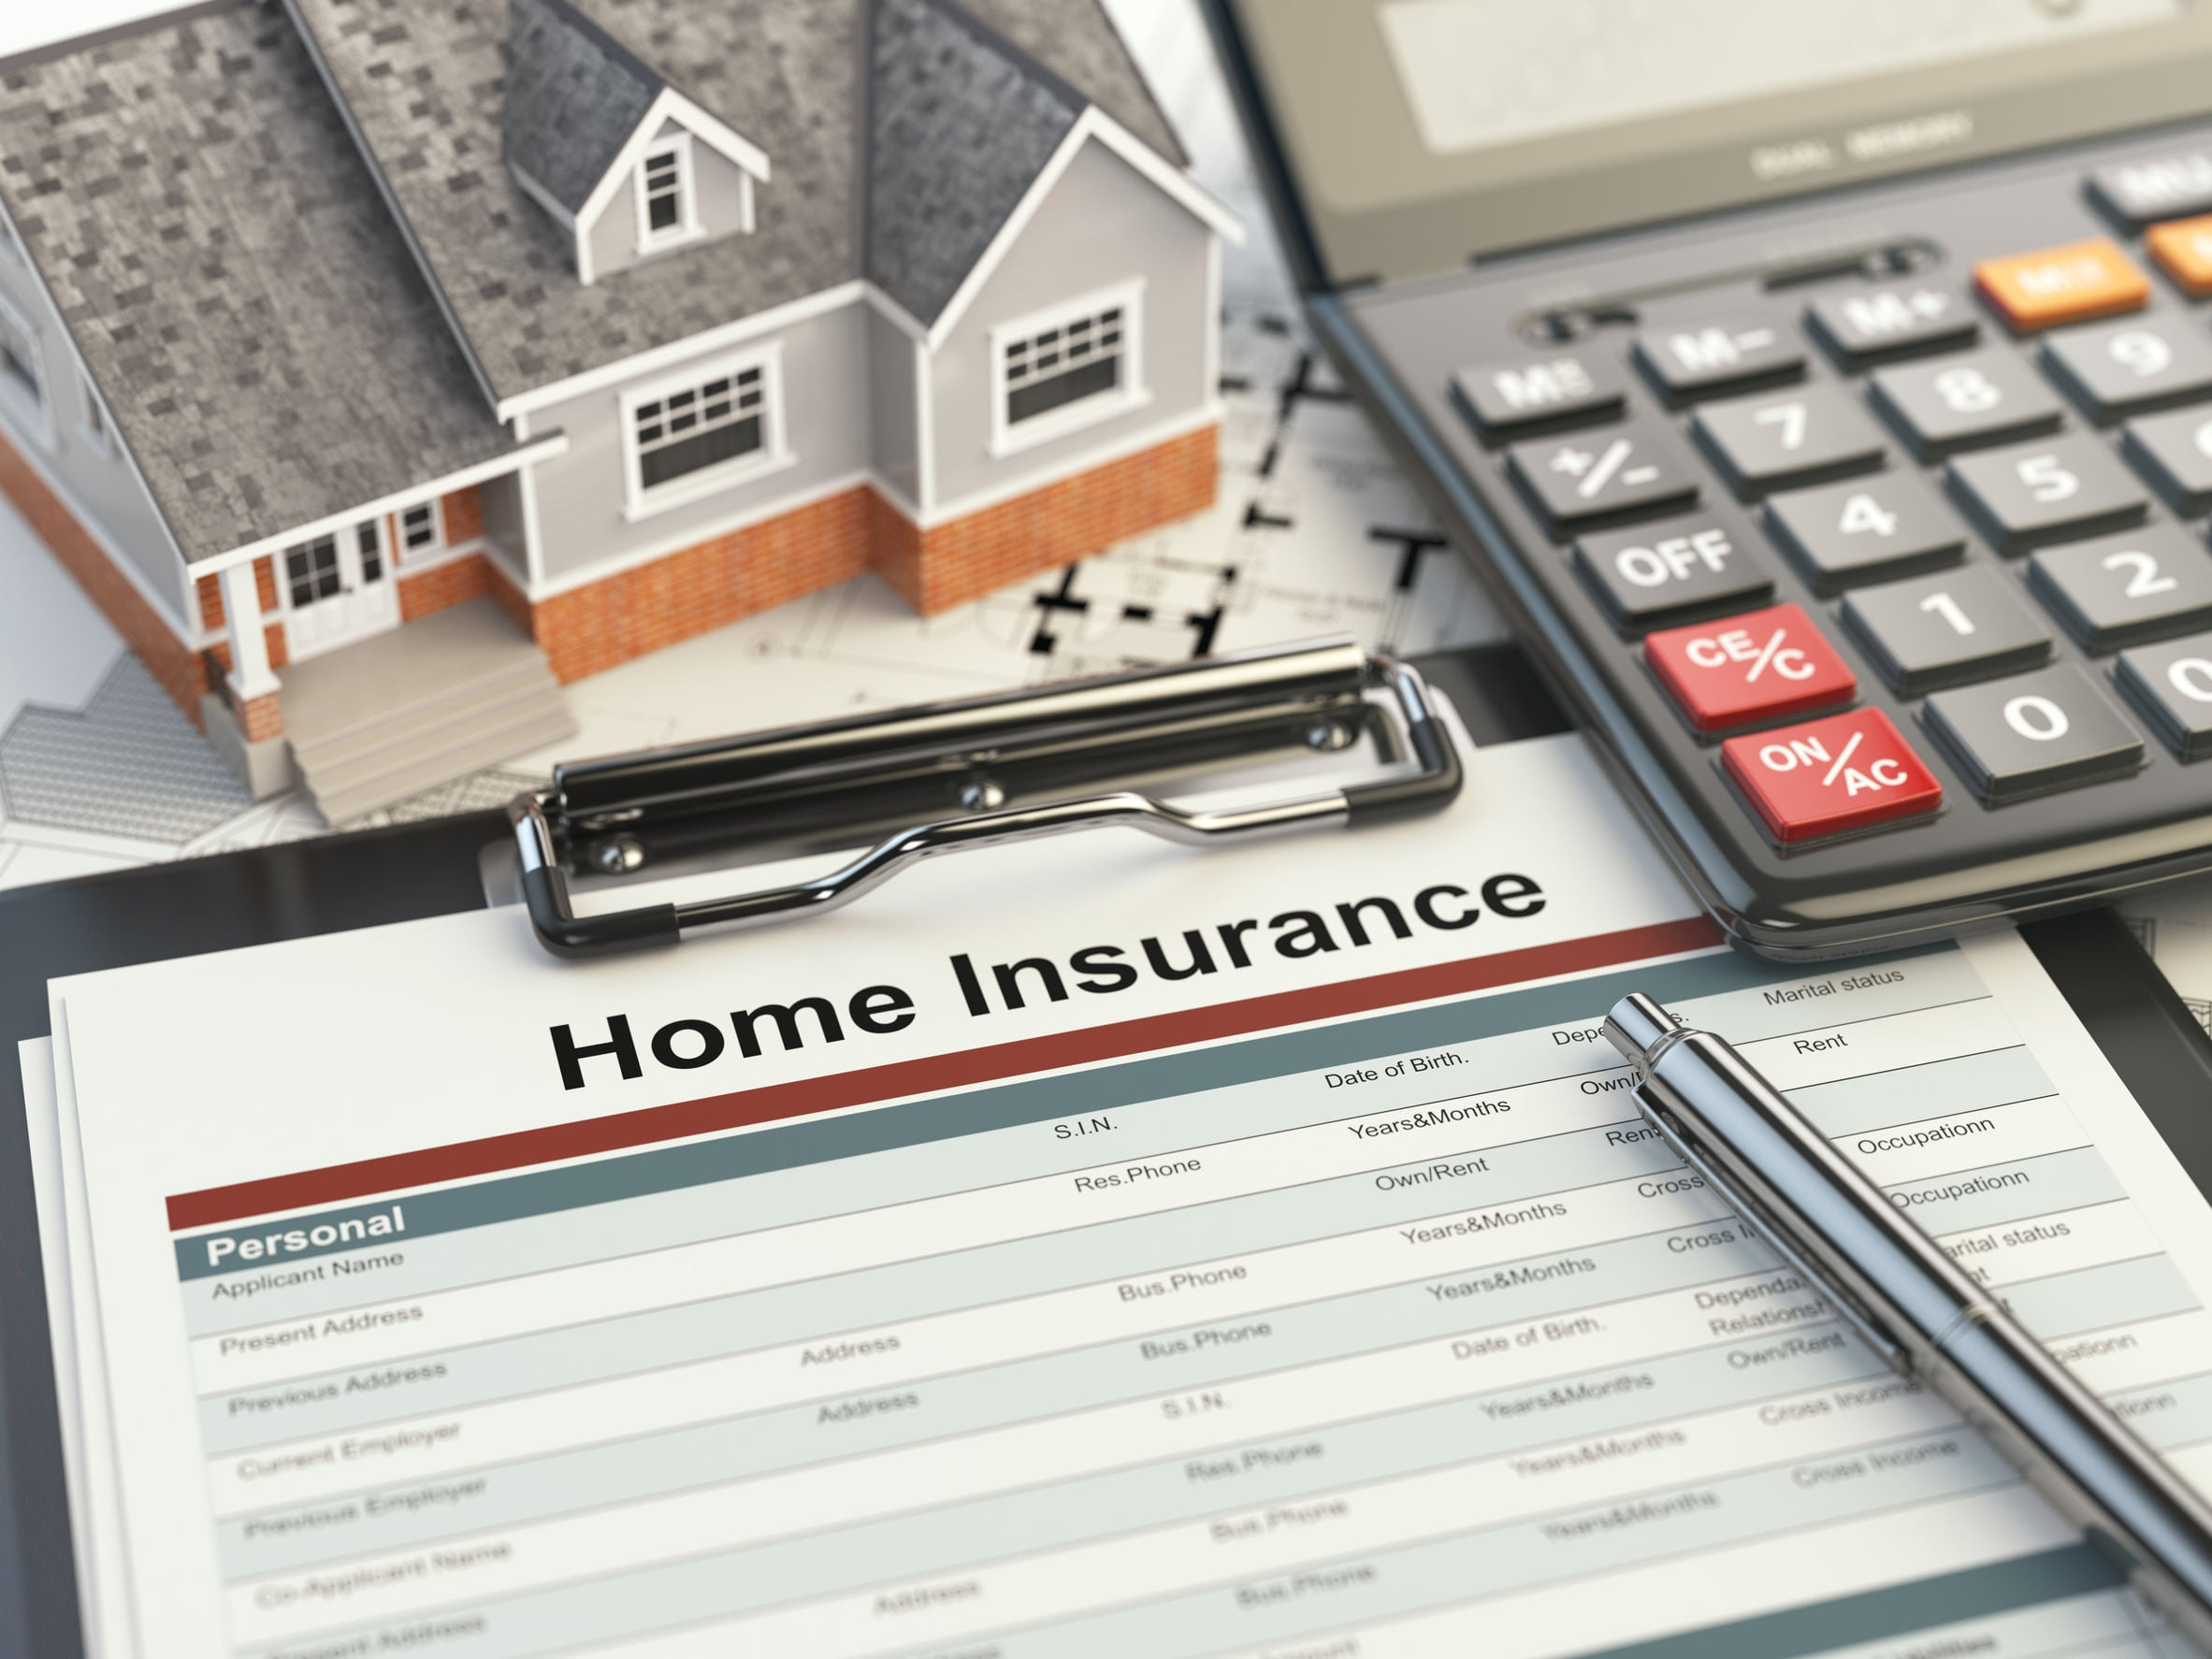 Most Common Reasons Floridians File Homeowner's Insurance Claims